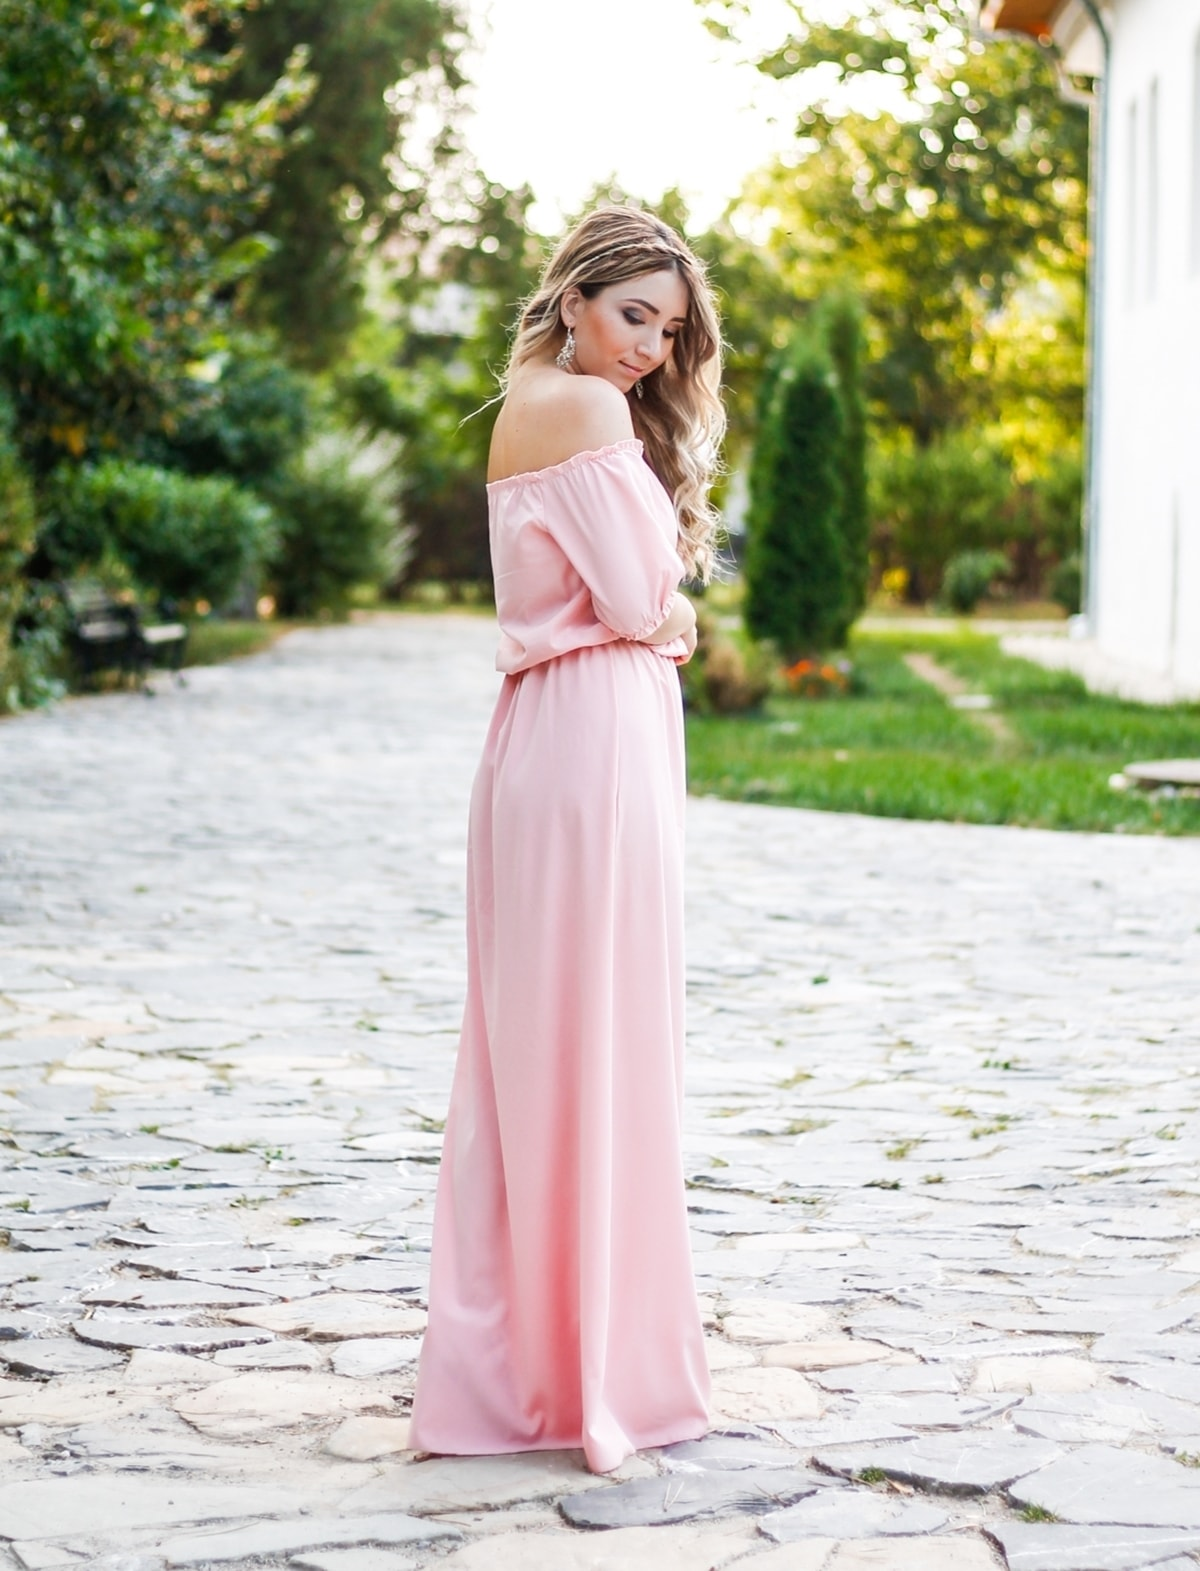 Bridesmaid dress, blogger andreea ristea, wedding, pale pink, look, hair, make up and styling